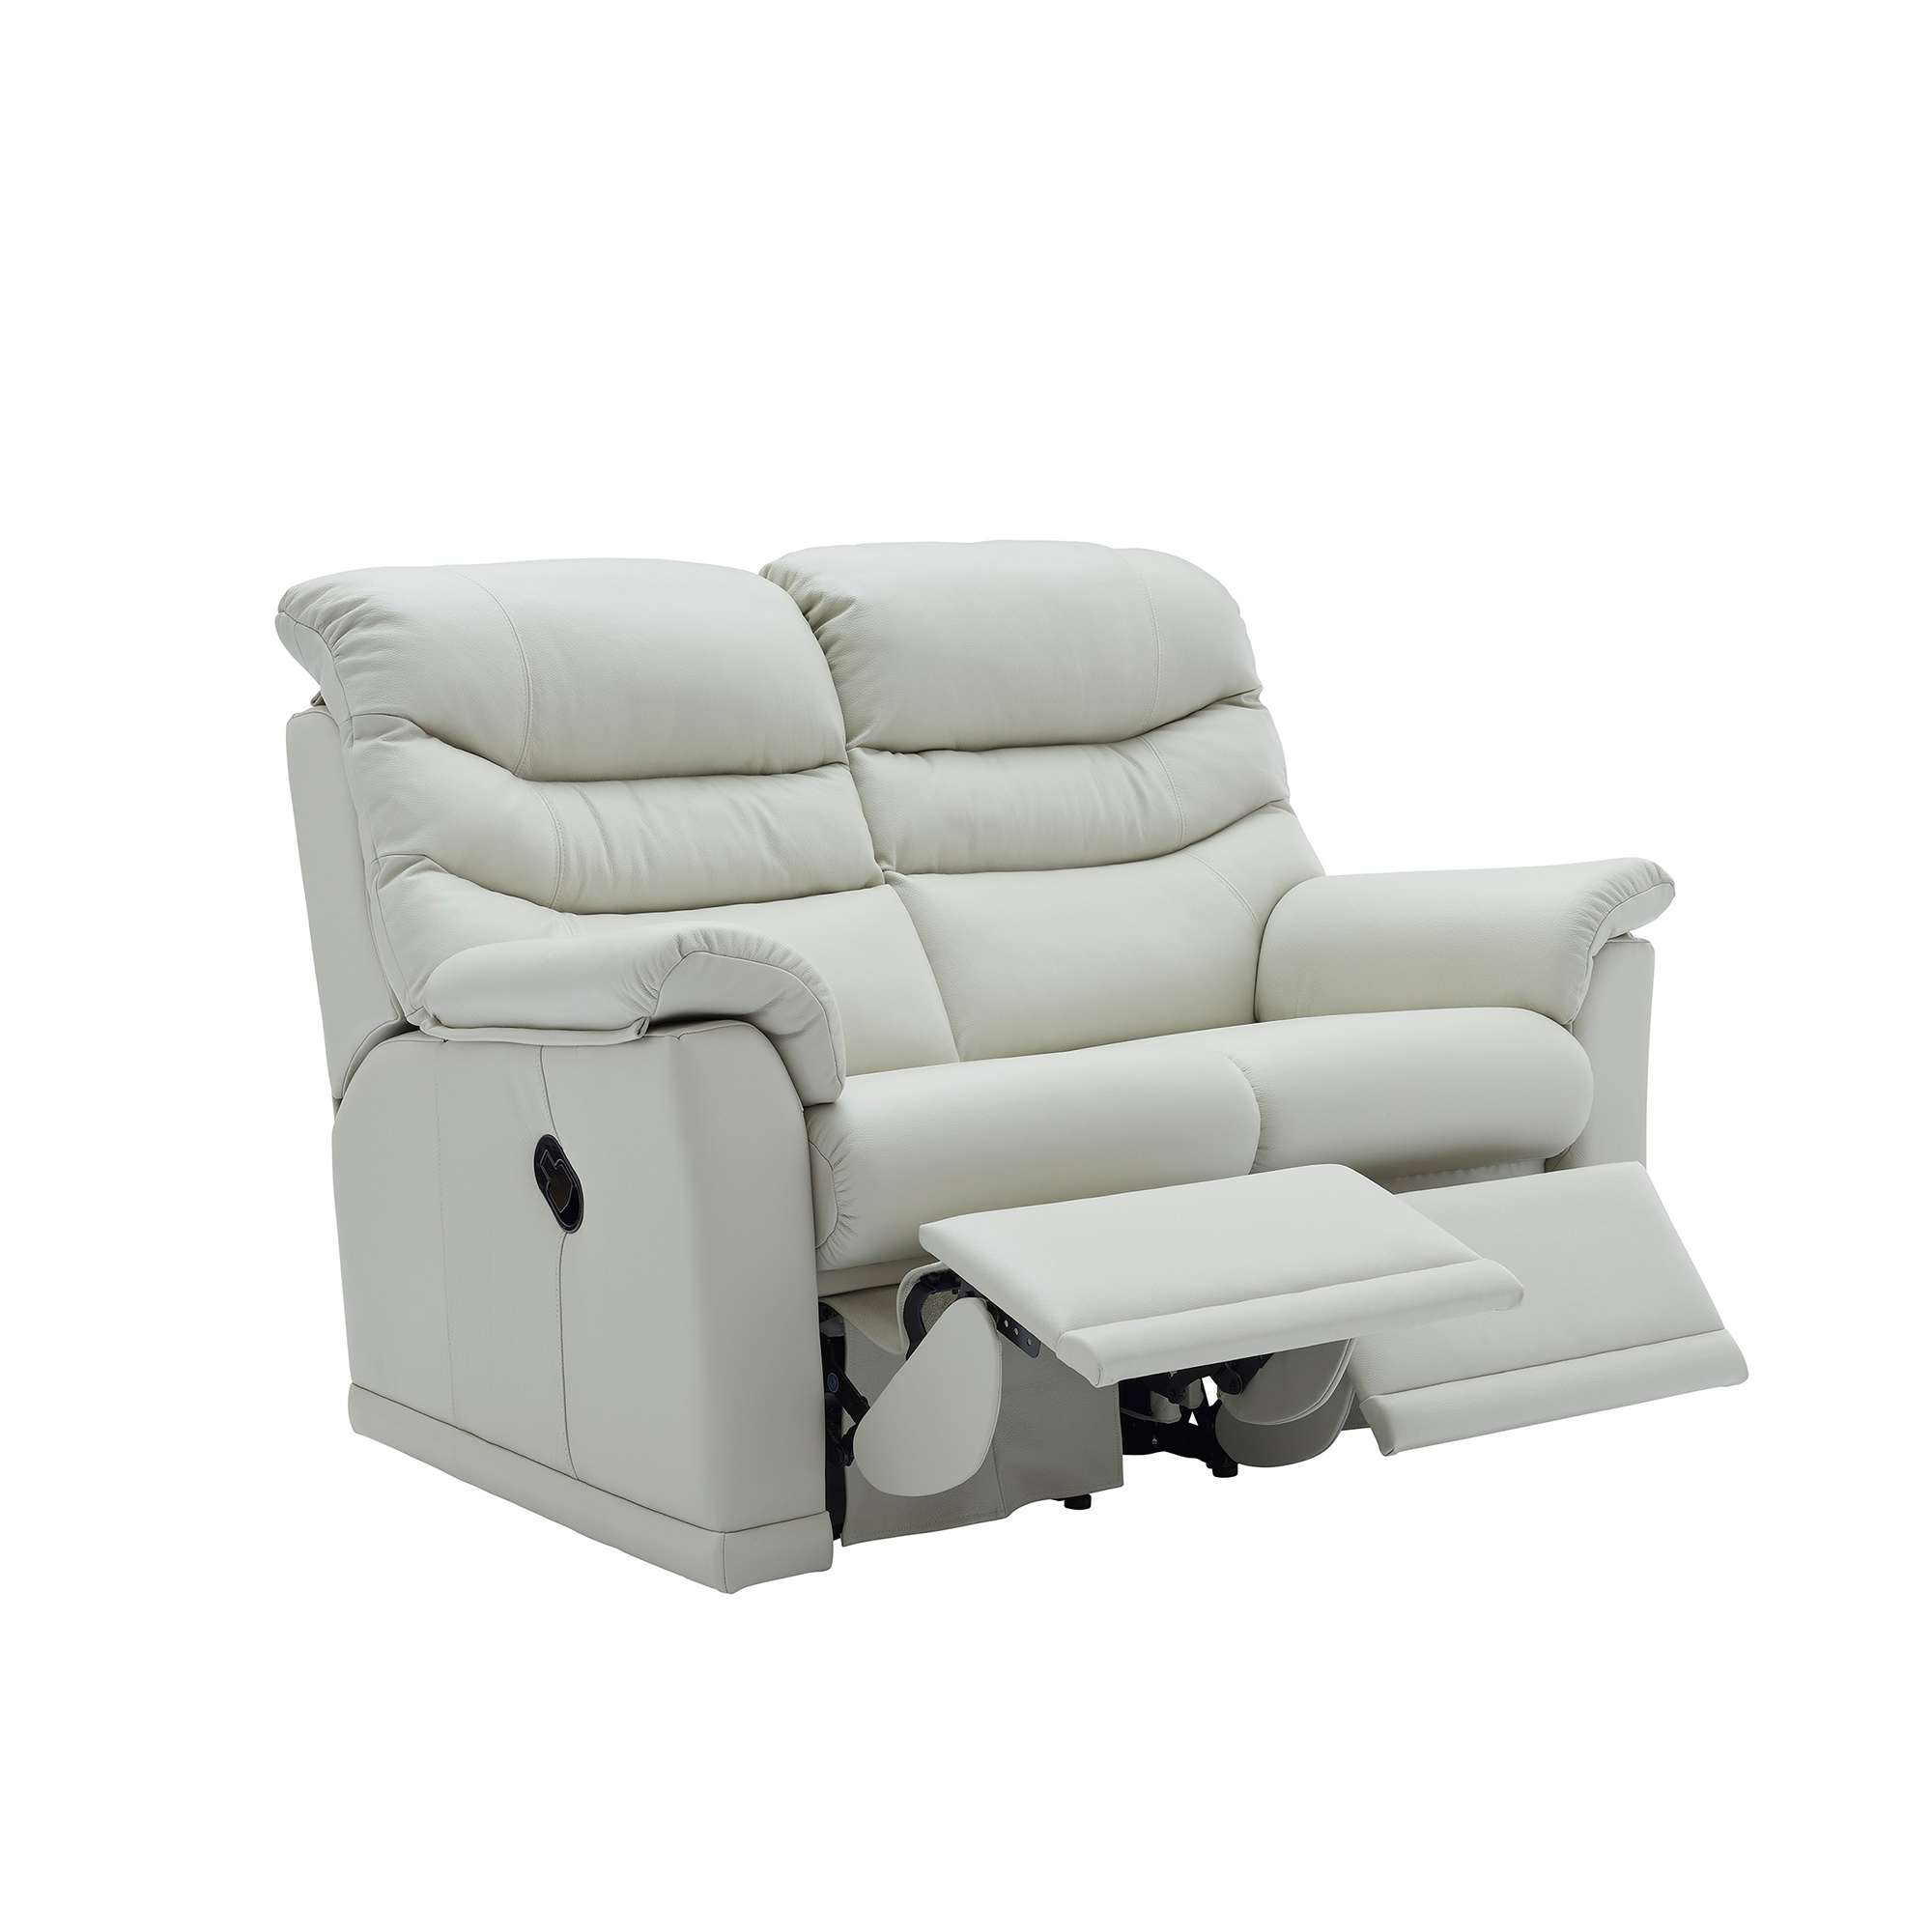 G Plan Malvern 2 Seater Double Manual Recliner Sofa In Leather